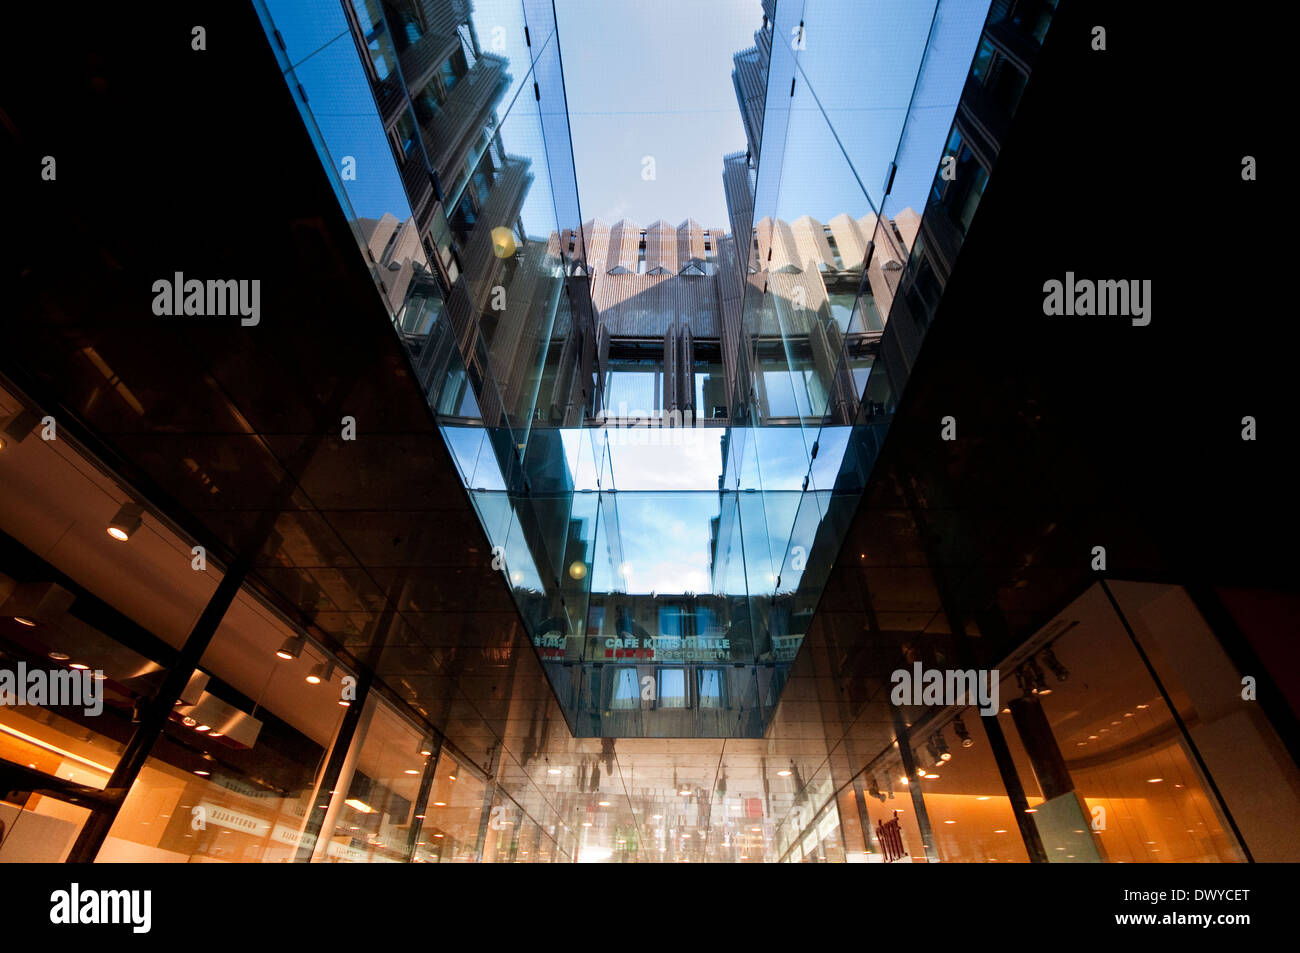 Germany, Bavaria, Munich, Fuenf Hoefe, Five Courtyards, Shopping Passage - Stock Image